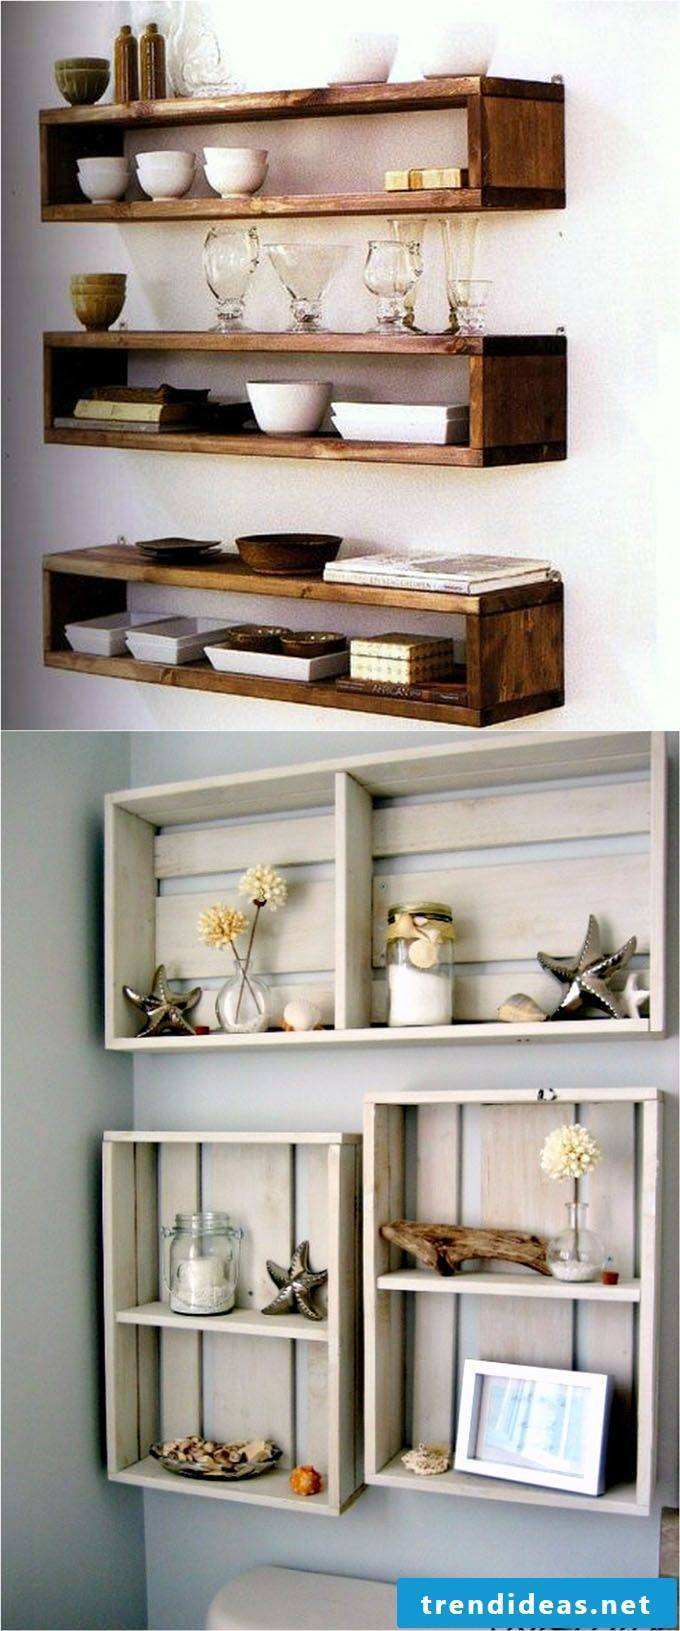 Wall shelf kitchen